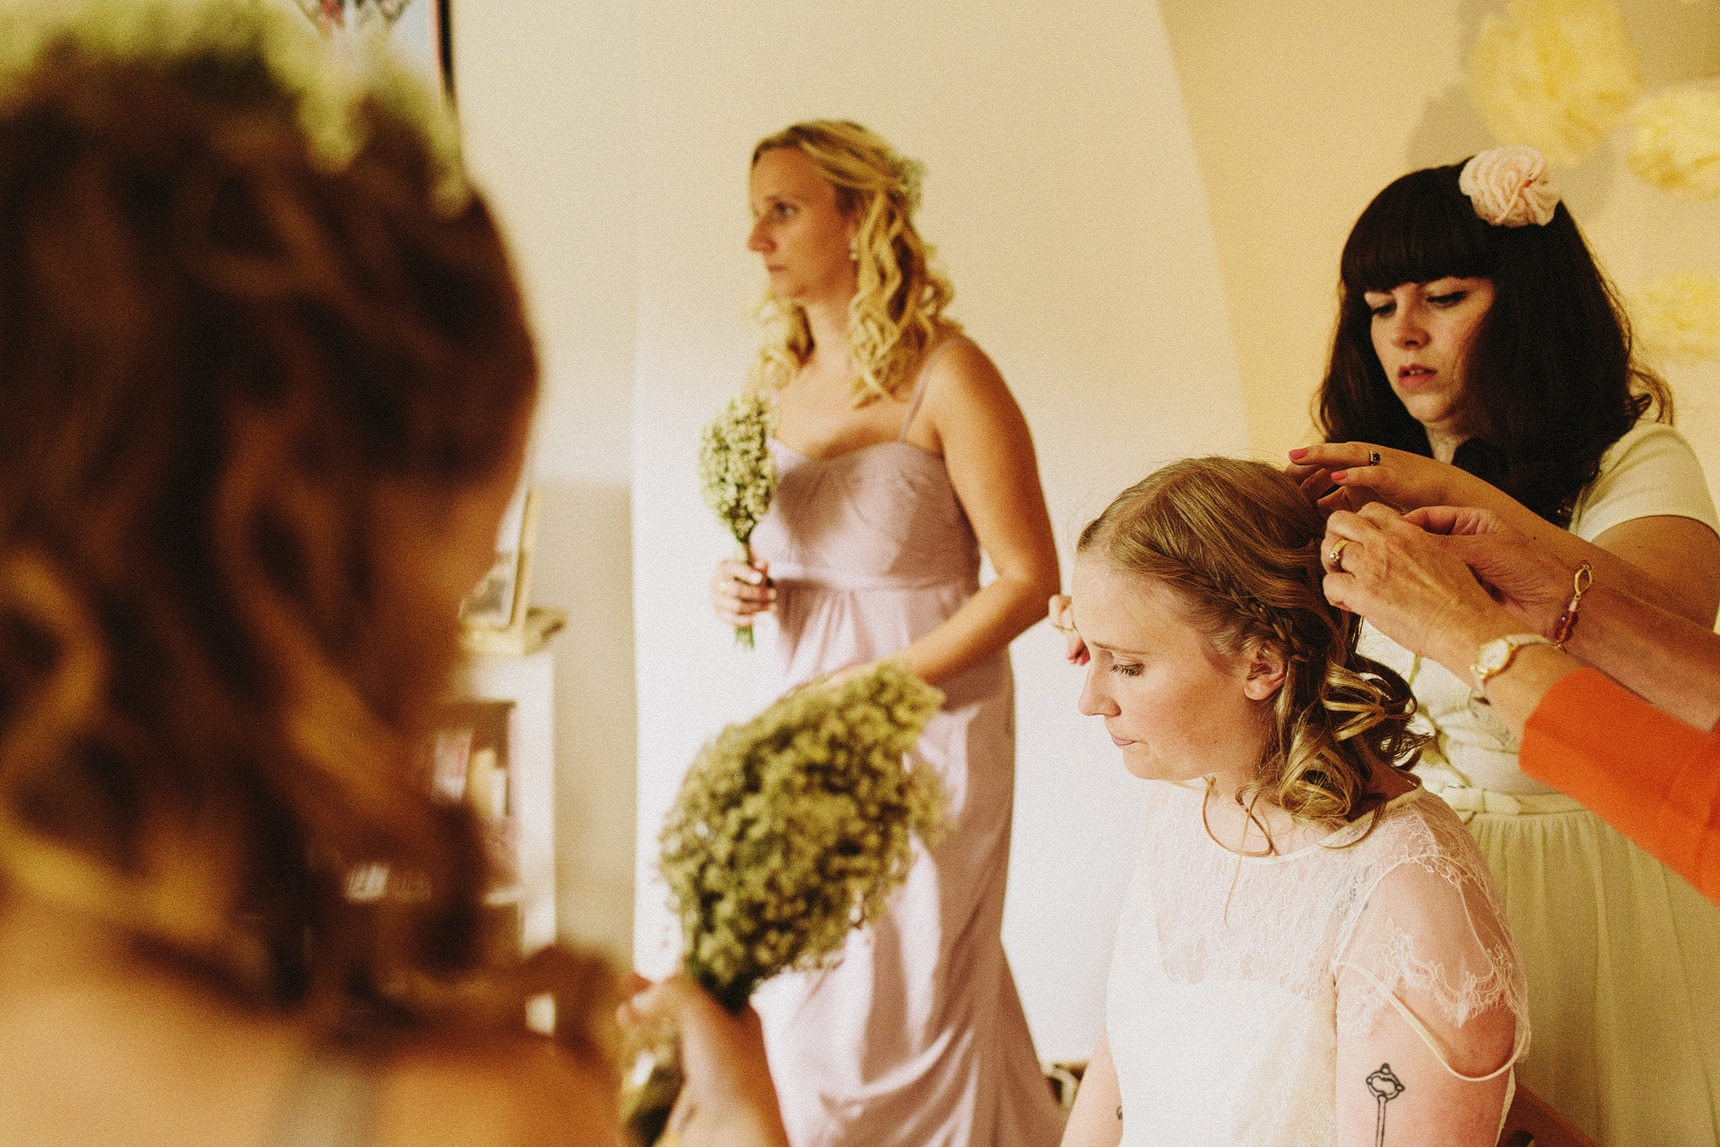 artistic wedding photographer oxfordshire